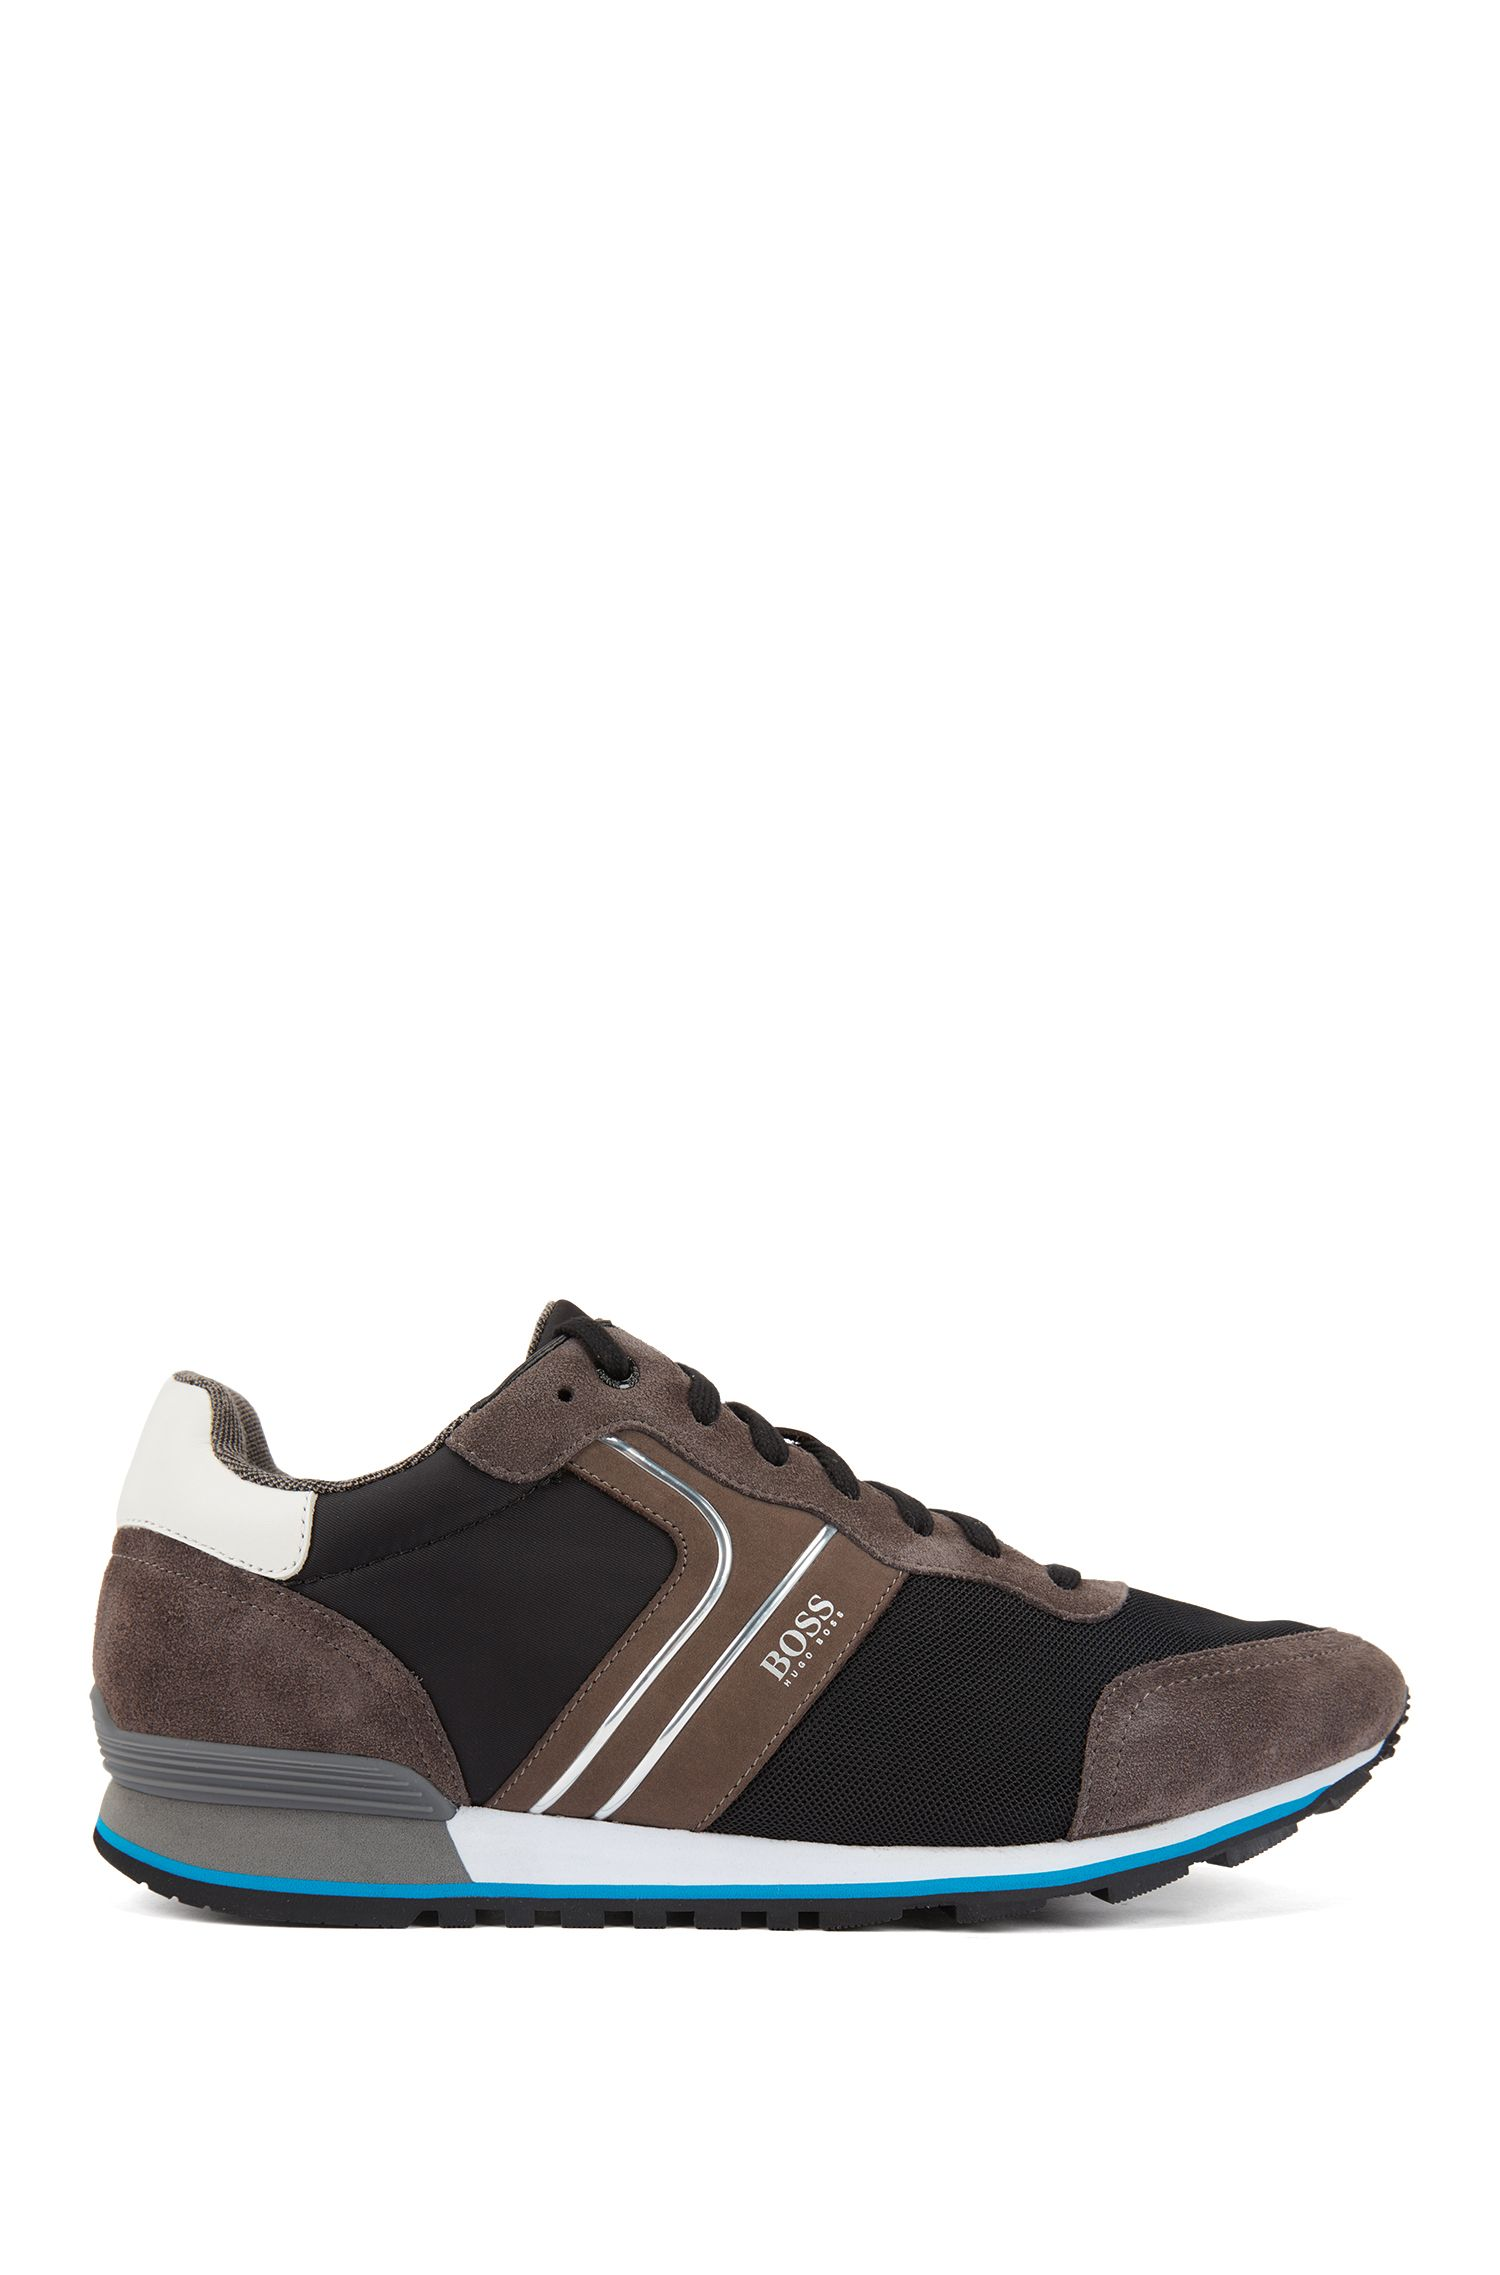 Running-inspired hybrid trainers with bamboo-charcoal lining, Grey